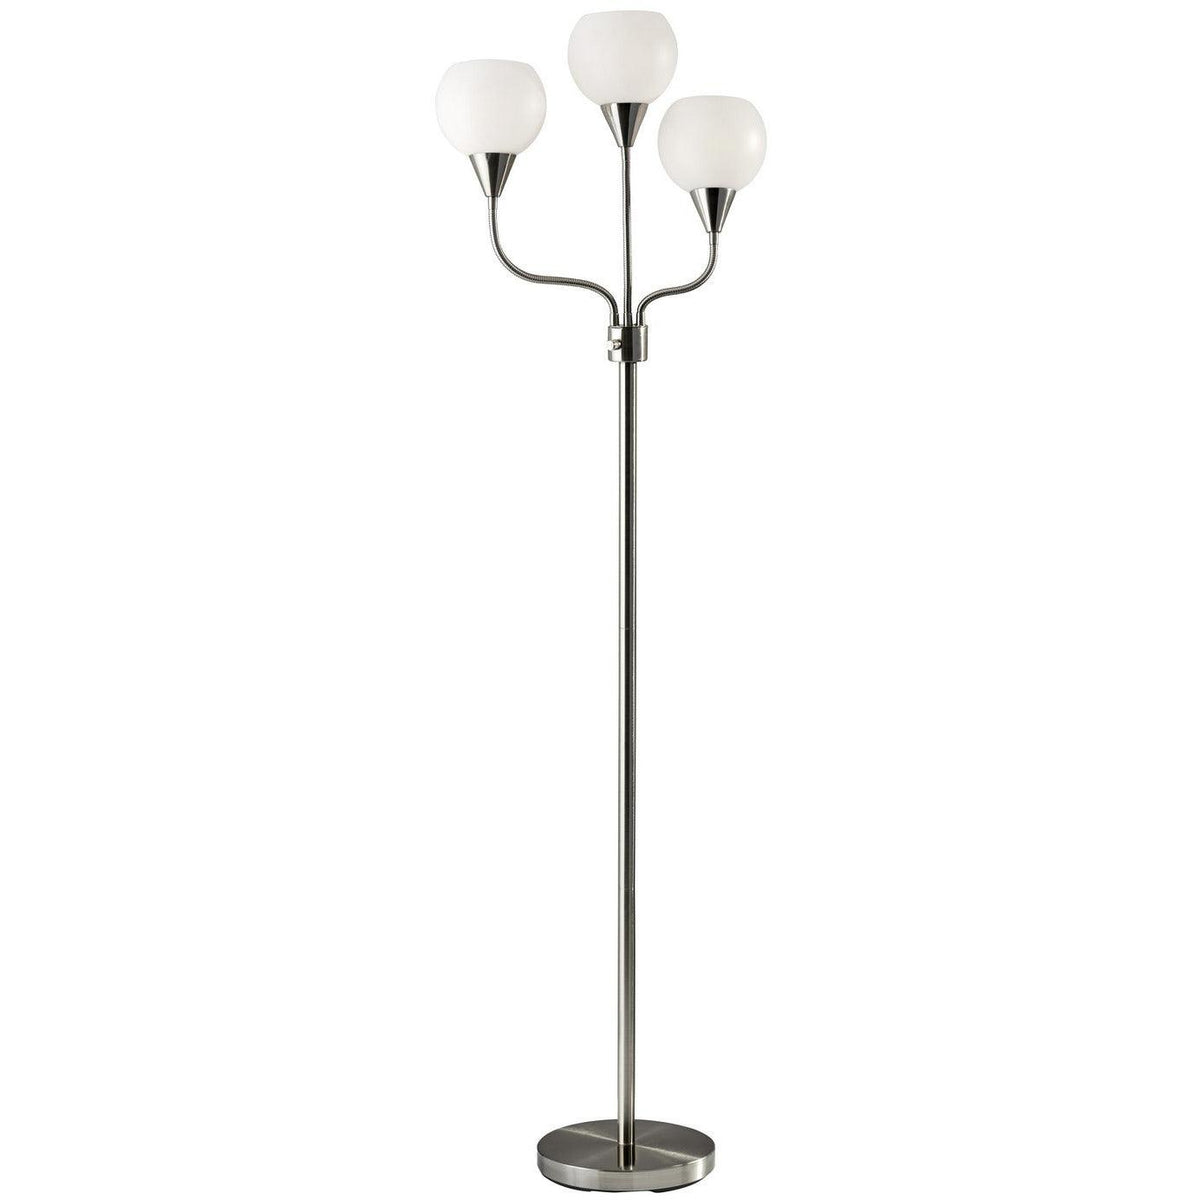 Adesso Home - 1534-22 - Three Light Table Lamp - Brushed Steel